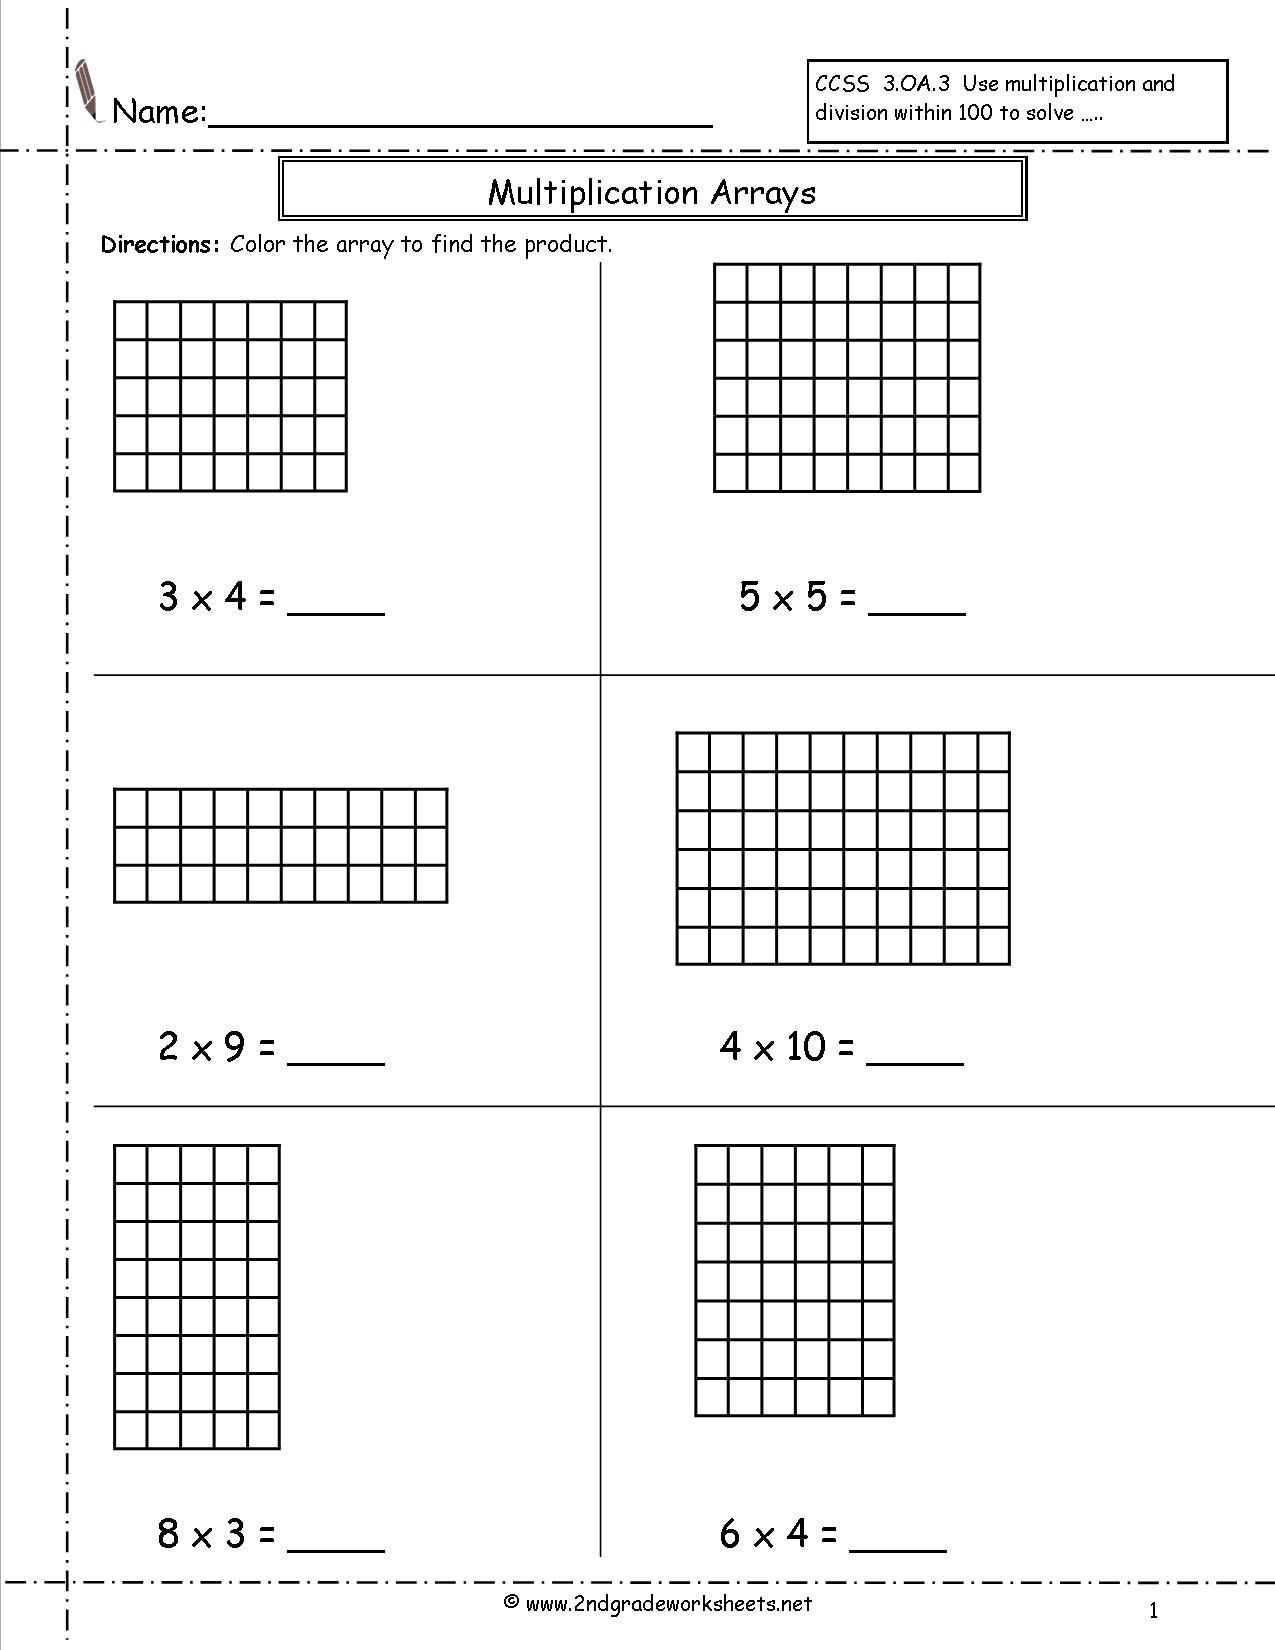 Multiplication Arrays Worksheets Grade 3 Theme Library